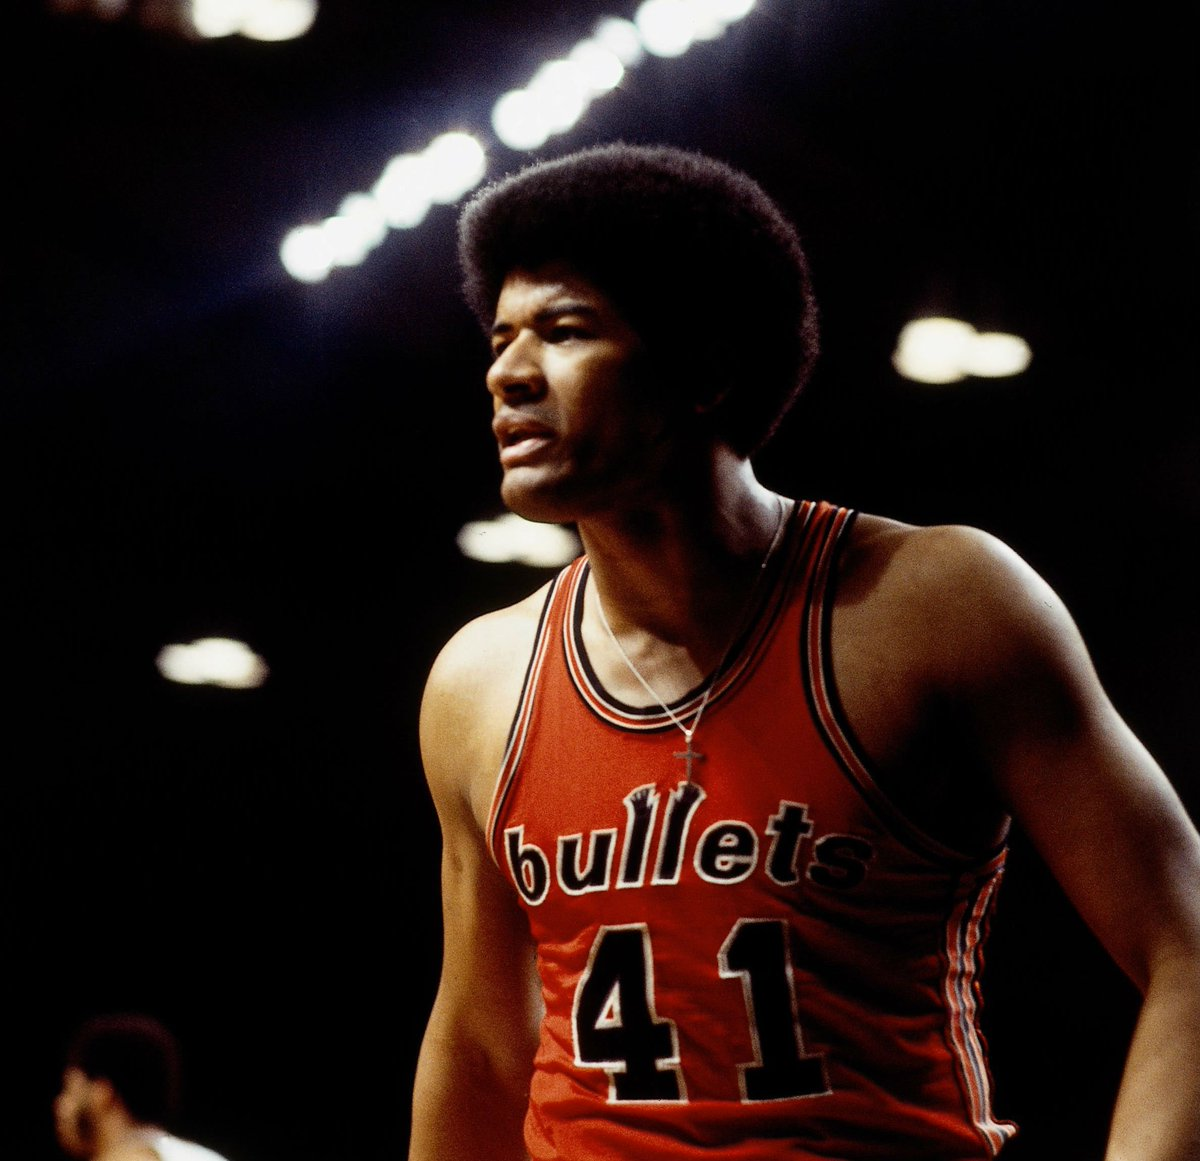 wes unseld - photo #26